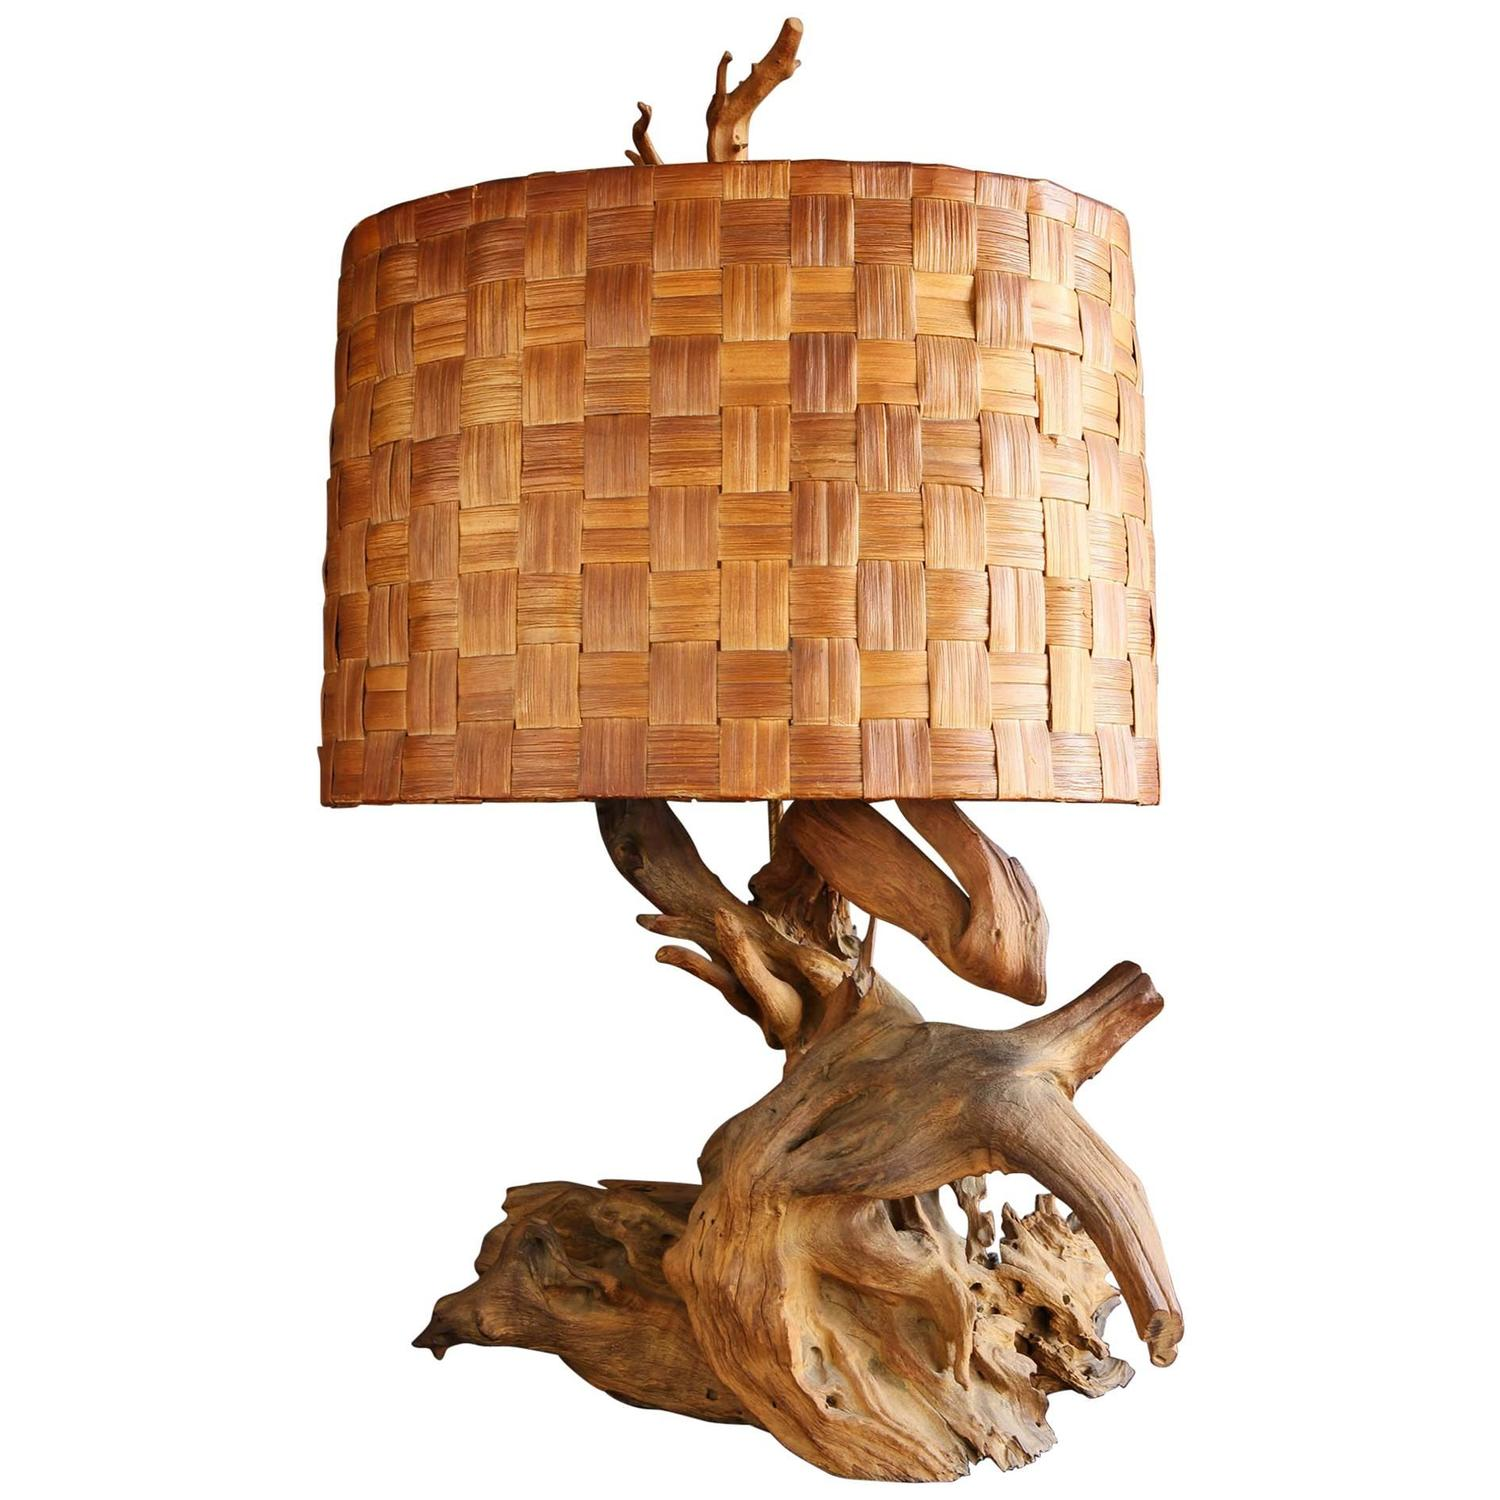 driftwood table lamp with woven shade for sale at 1stdibs. Black Bedroom Furniture Sets. Home Design Ideas